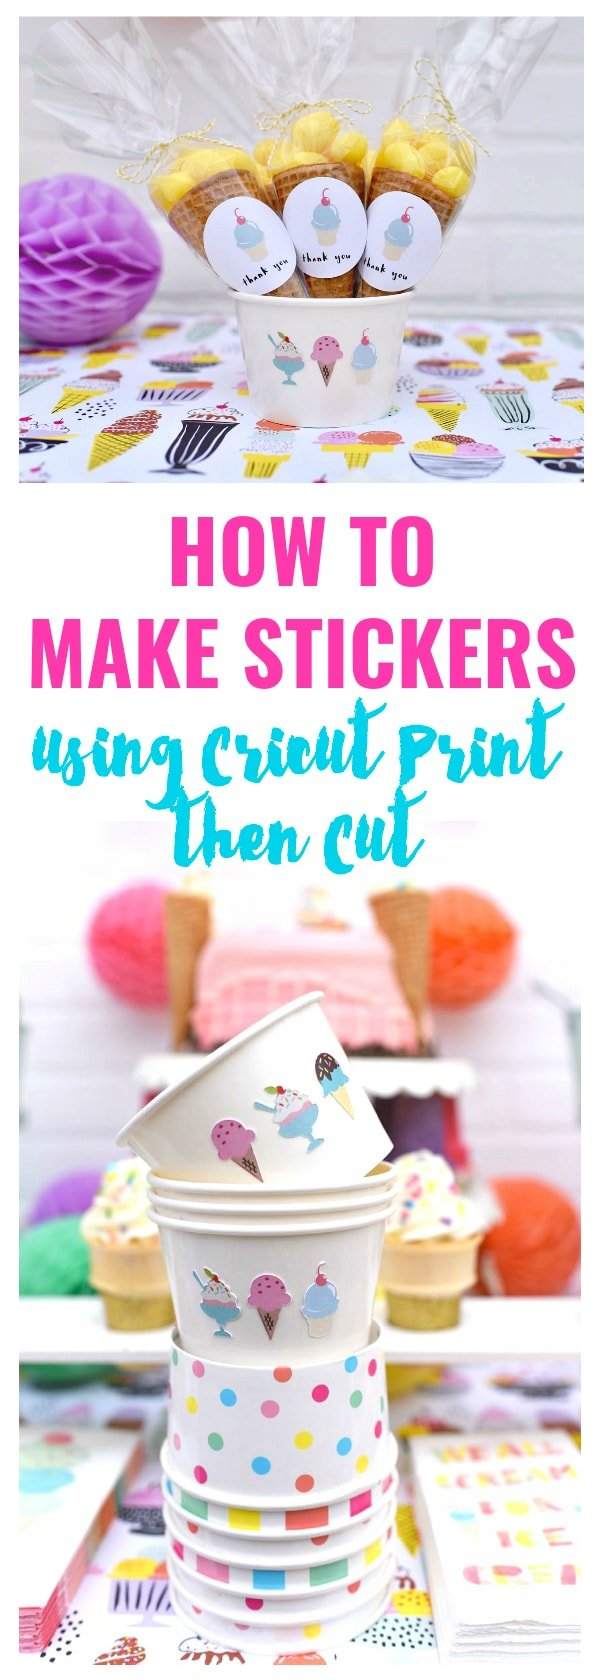 How to make stickers using cricut print then cut feature so awesome